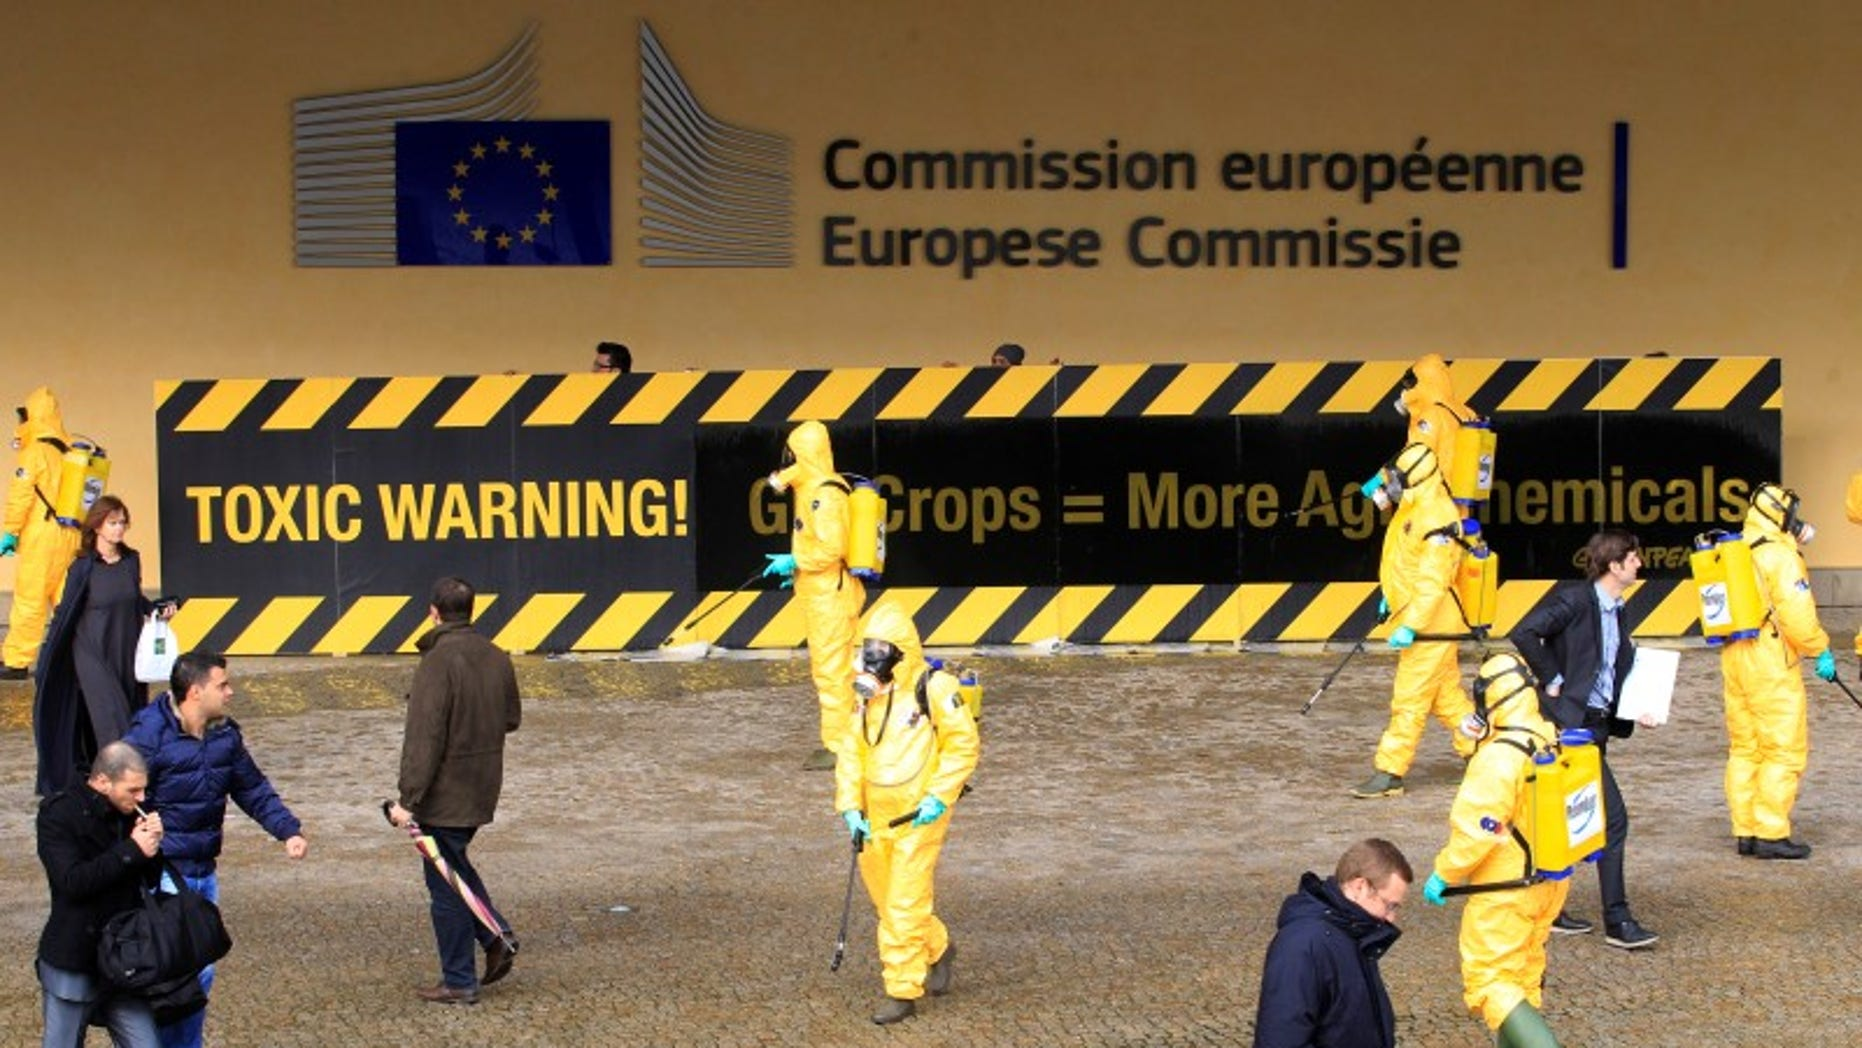 Activists of environmental group Greenpeace wear masks and protective clothing while protesting outside the European Commission headquarters in Brussels